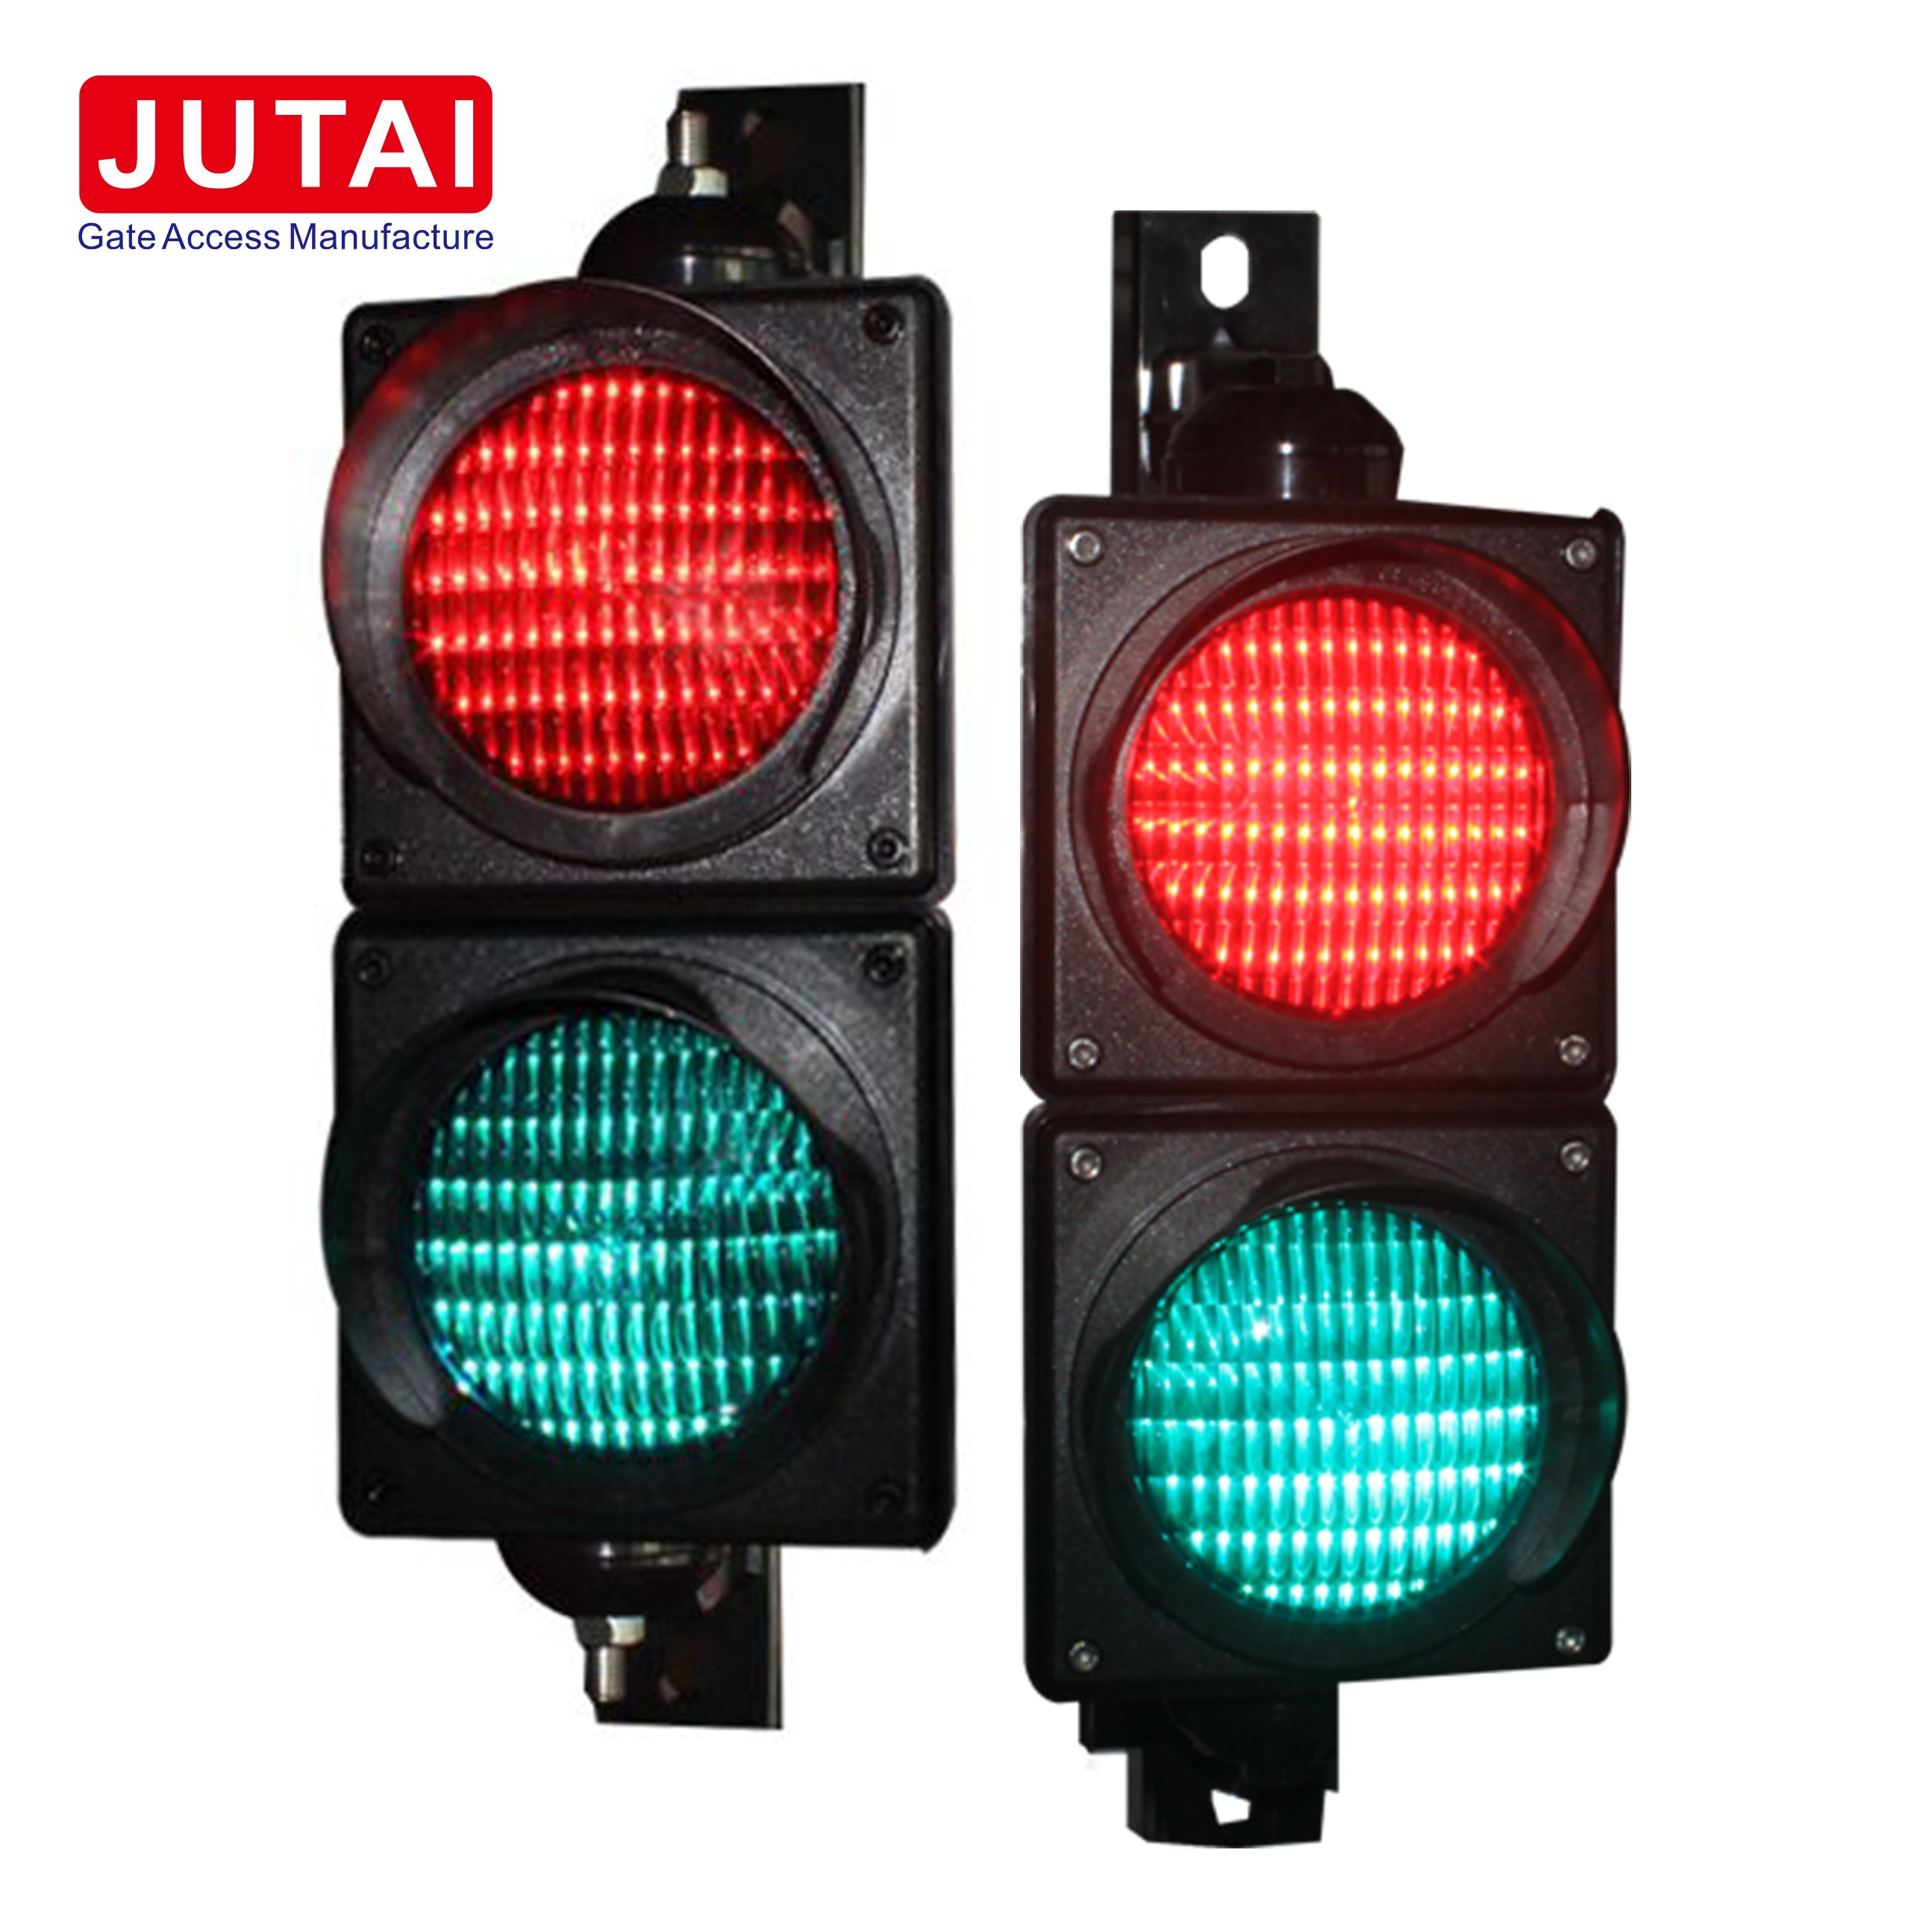 4Inch High Flux Traffic Signal Series For Parking Parking Entrance Gate System System